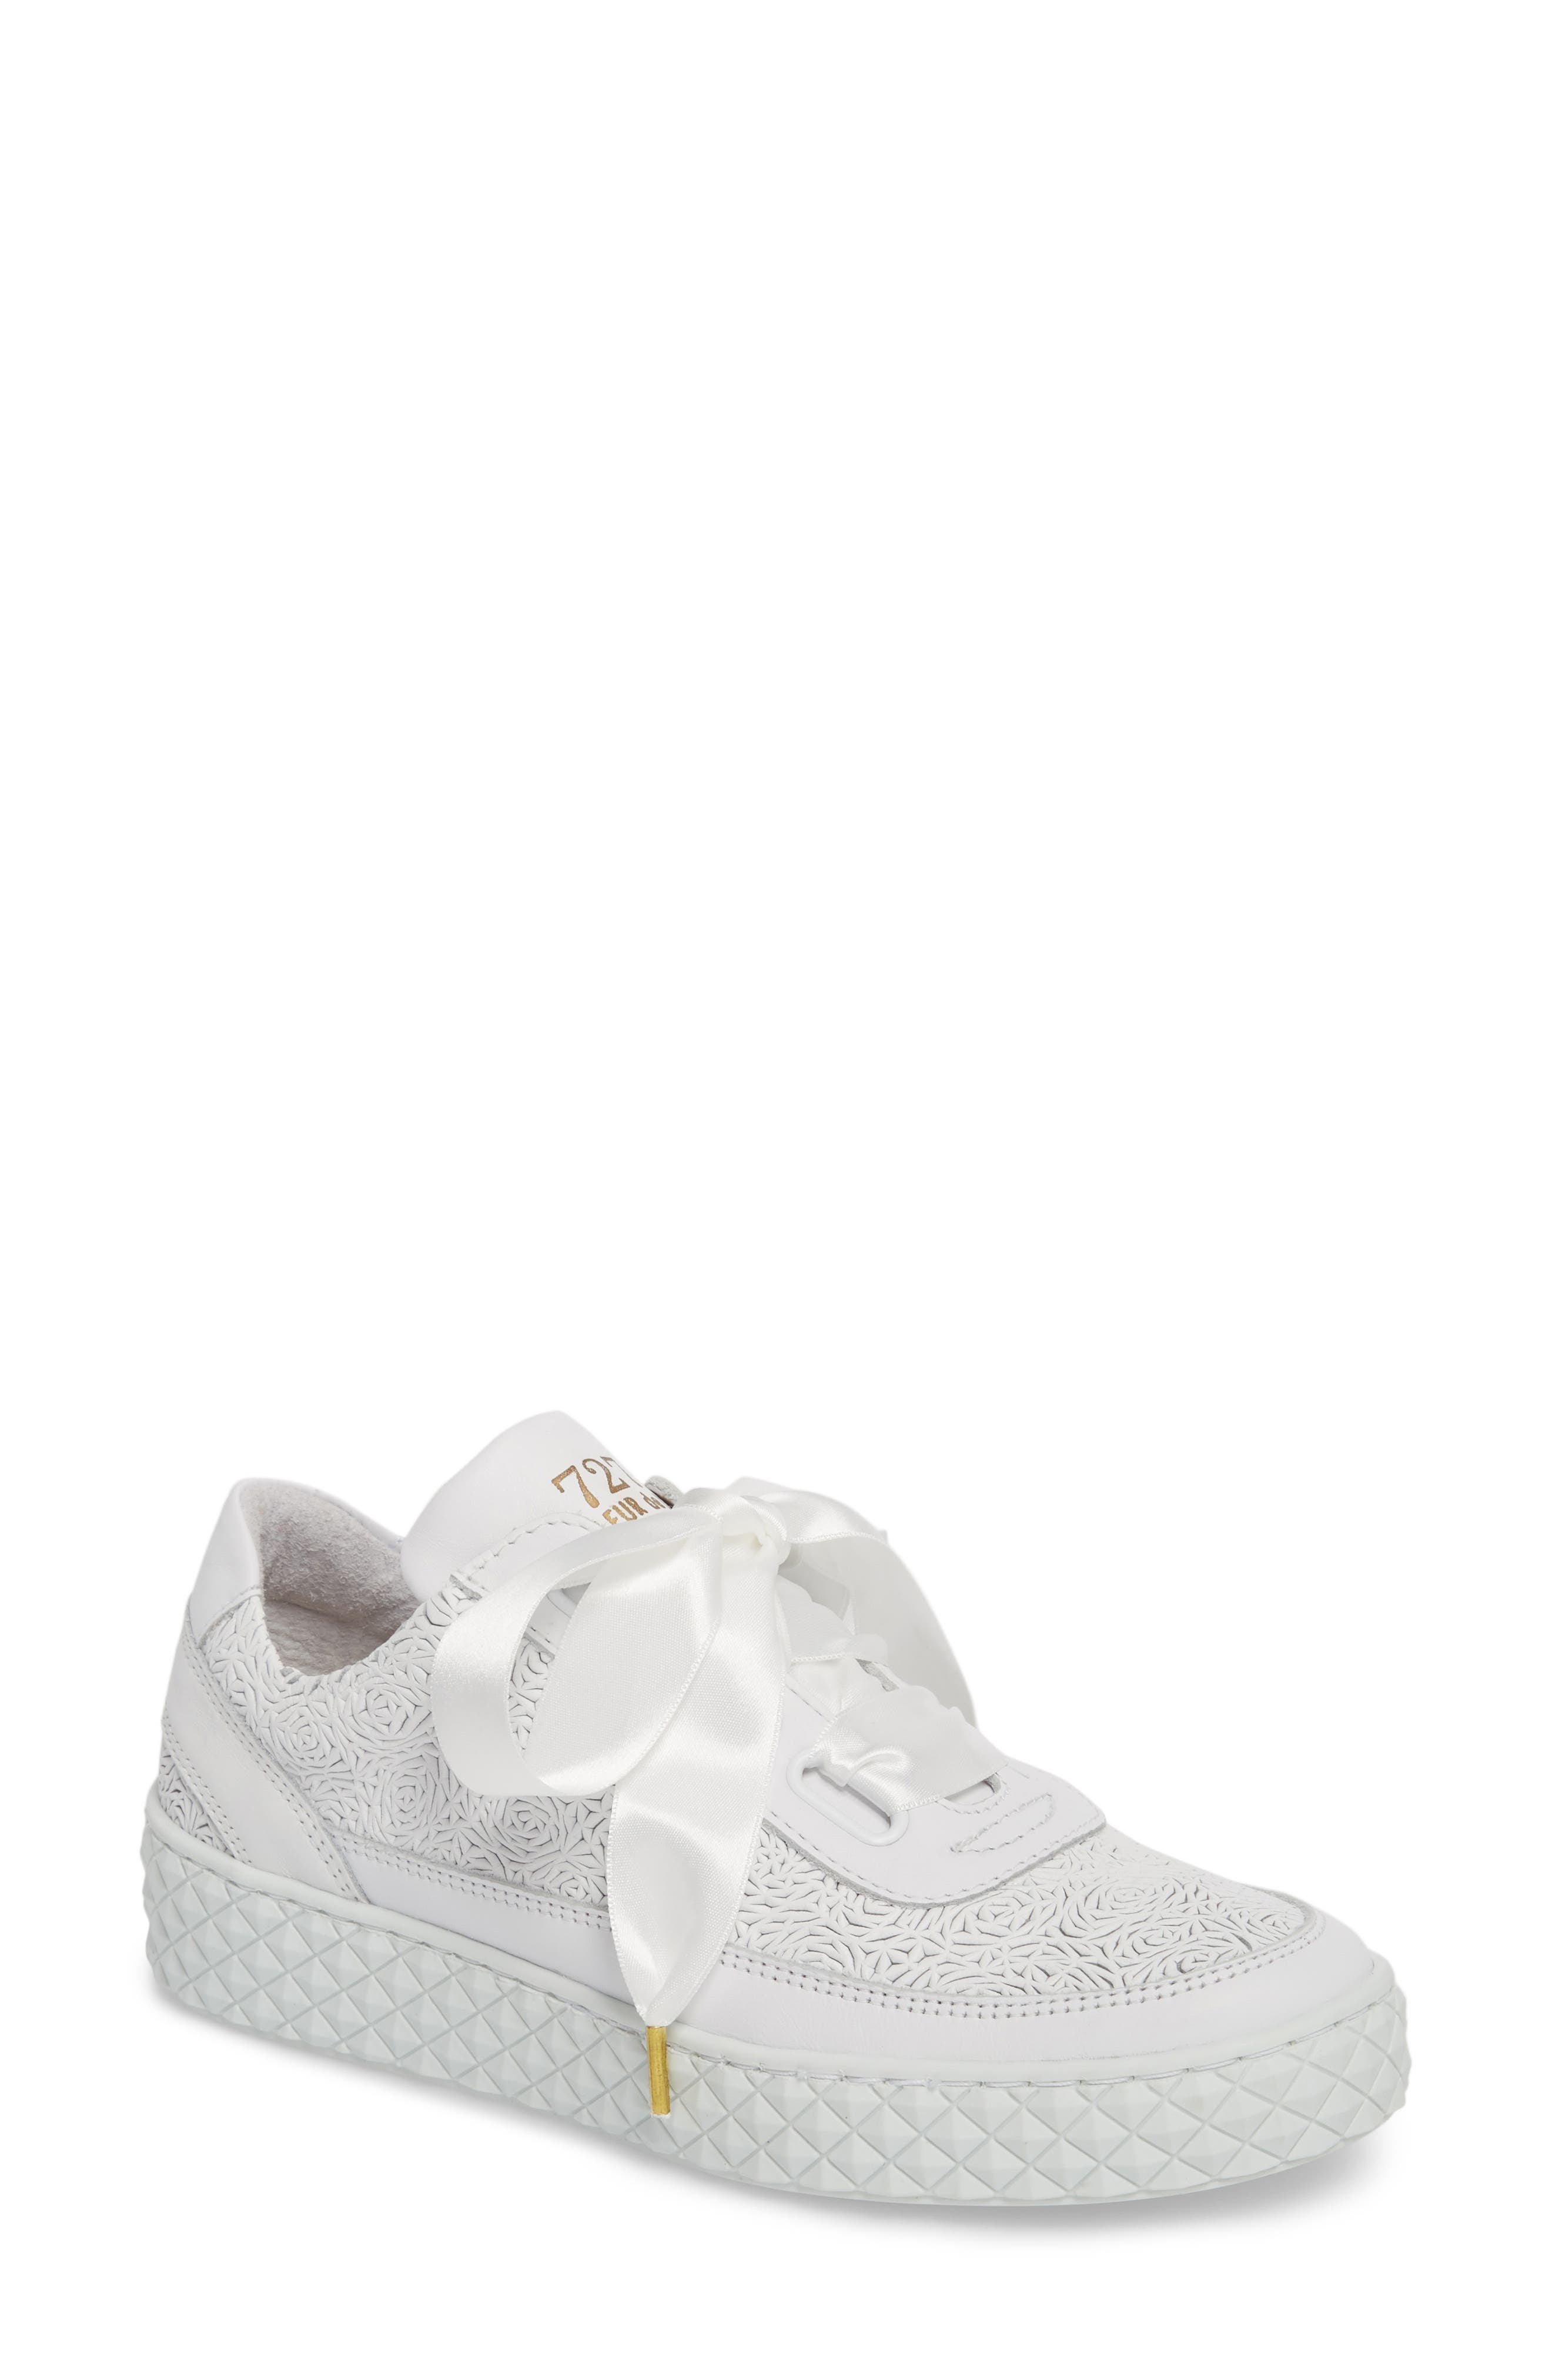 Montreal Sneaker,                             Main thumbnail 1, color,                             White Leather